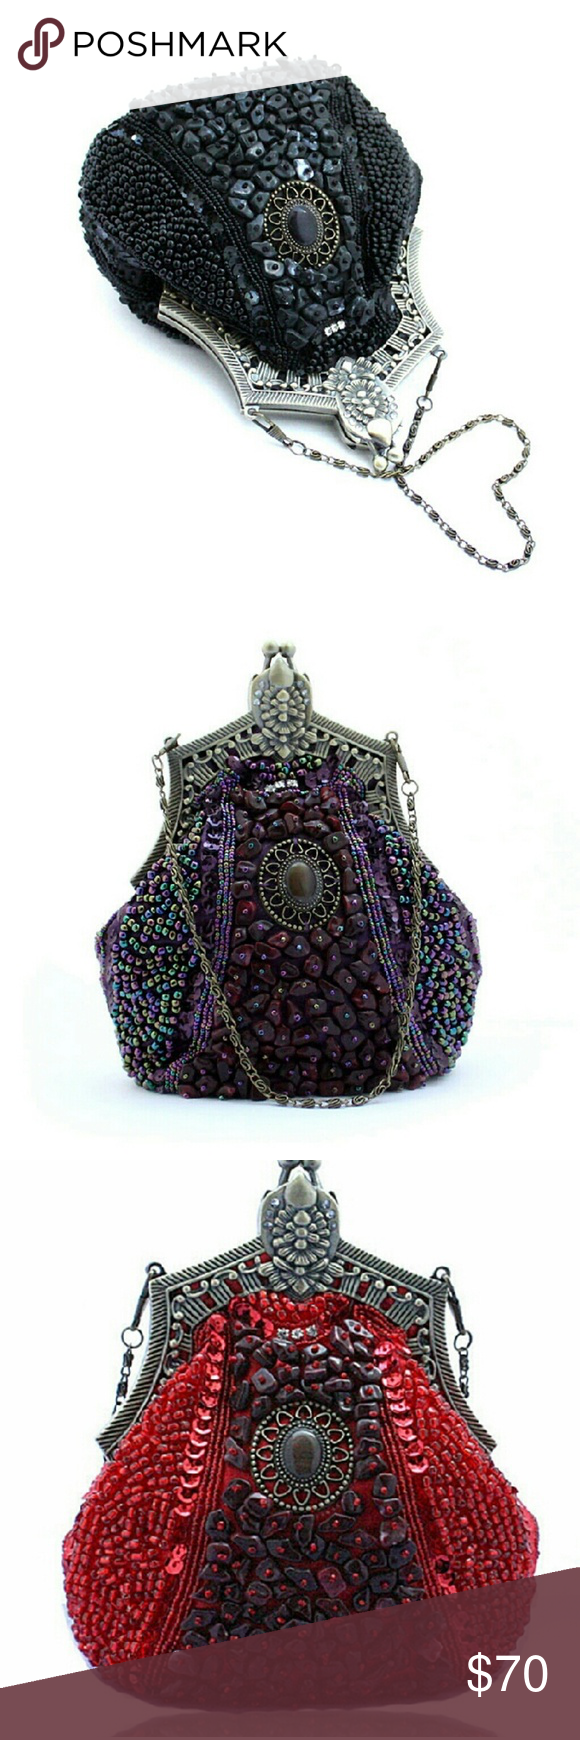 Beautiful Beaded Vintage Handbag Beautiful Beaded Vintage Handbag Bags Clutches & Wristlets